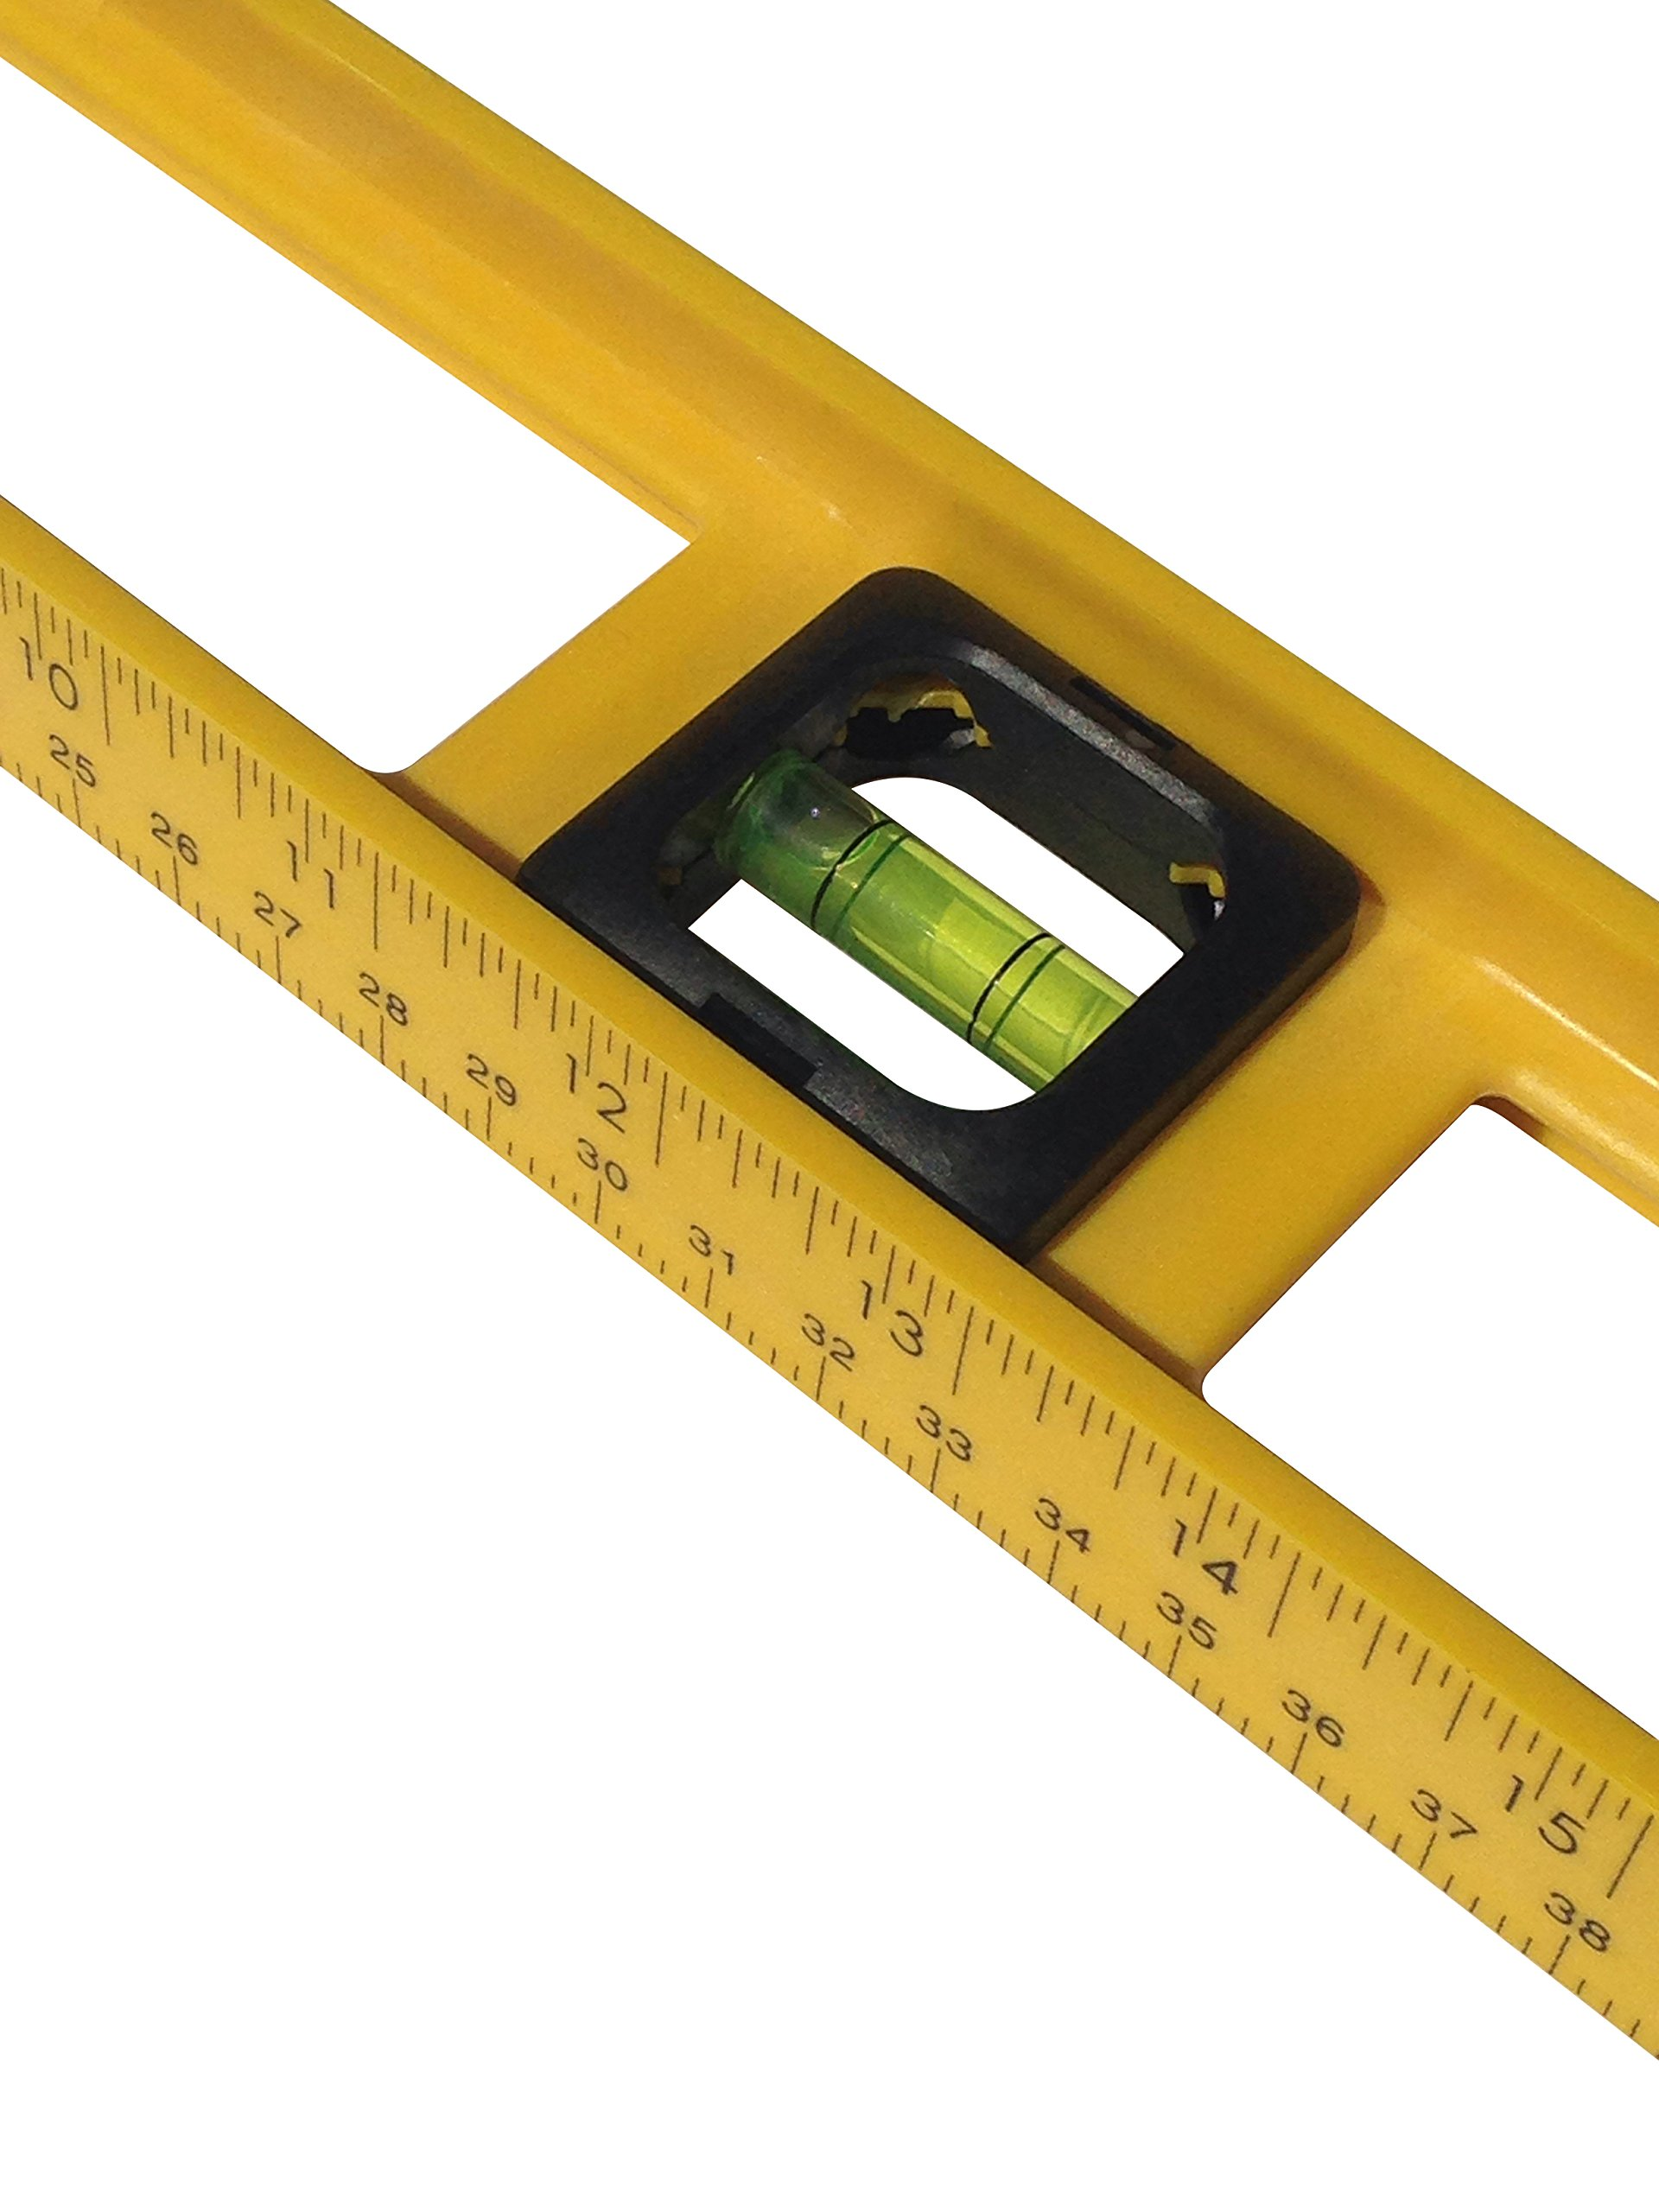 24 Inch and 6 Inch 3 Bubble Torpedo Level Pack Home or Jobsite Approved by Straight and Narrow (Image #5)